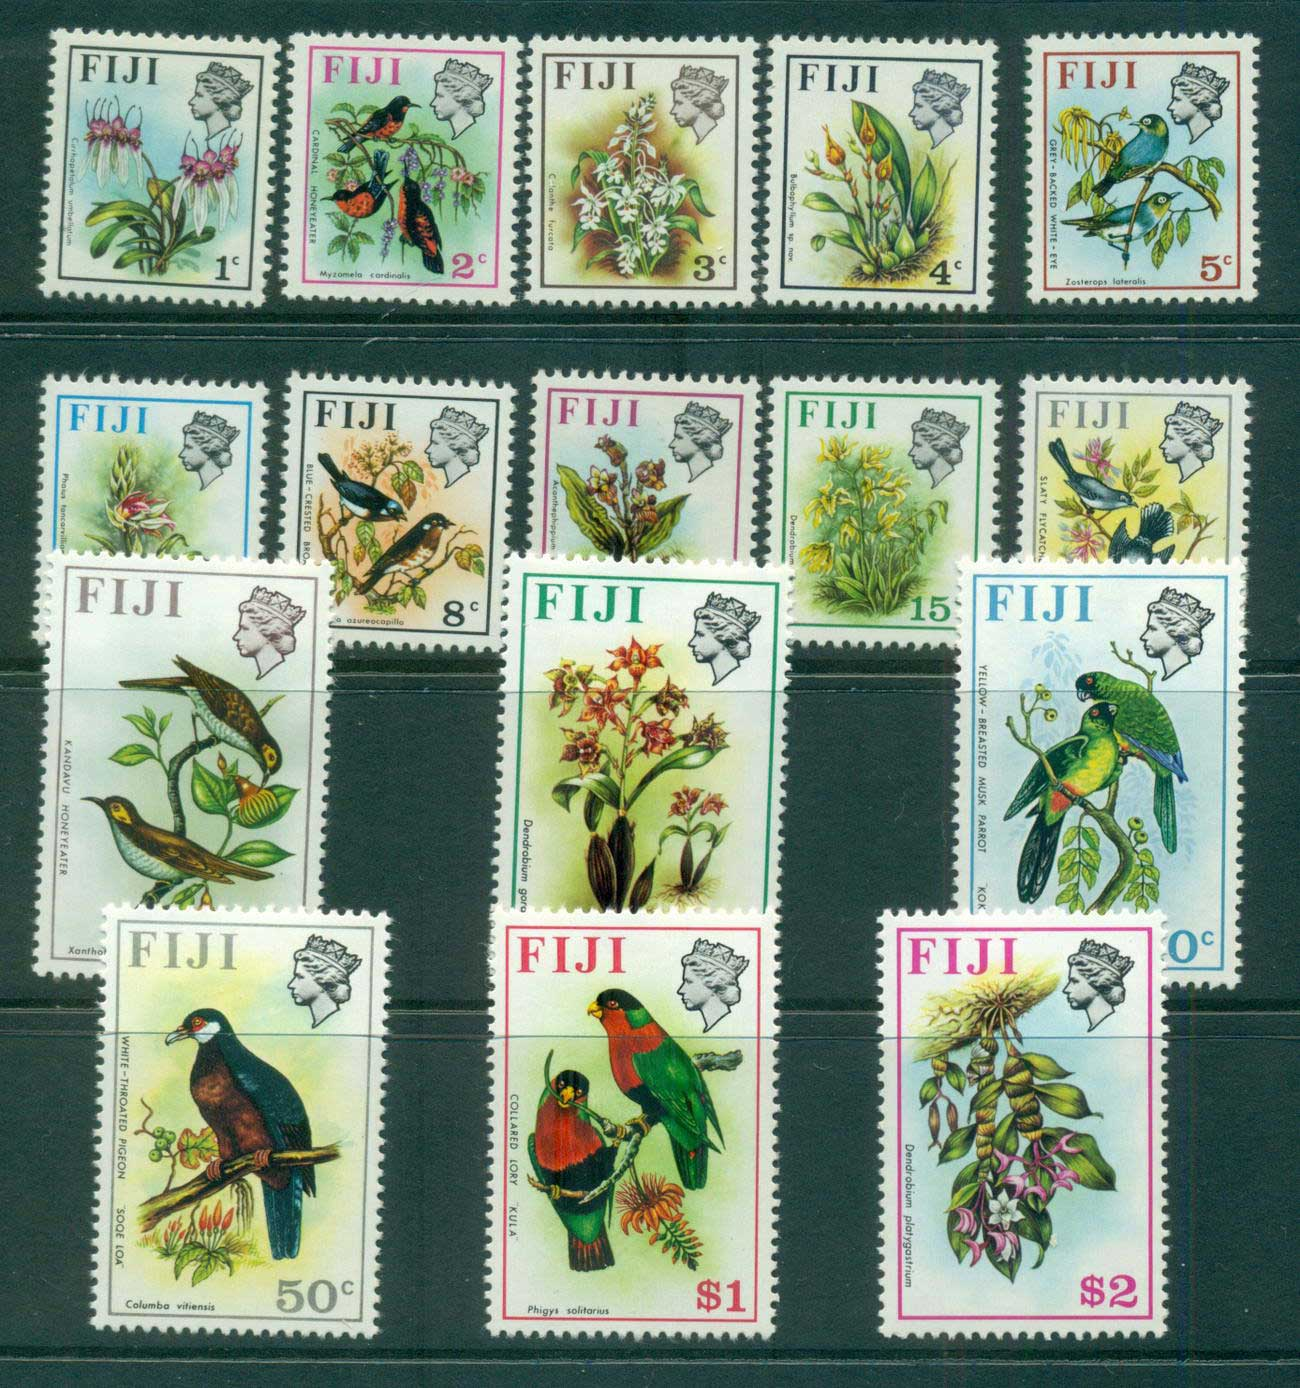 Fiji 1971-72 Birds & Flowers (16) Wmk upright MUH lot54313